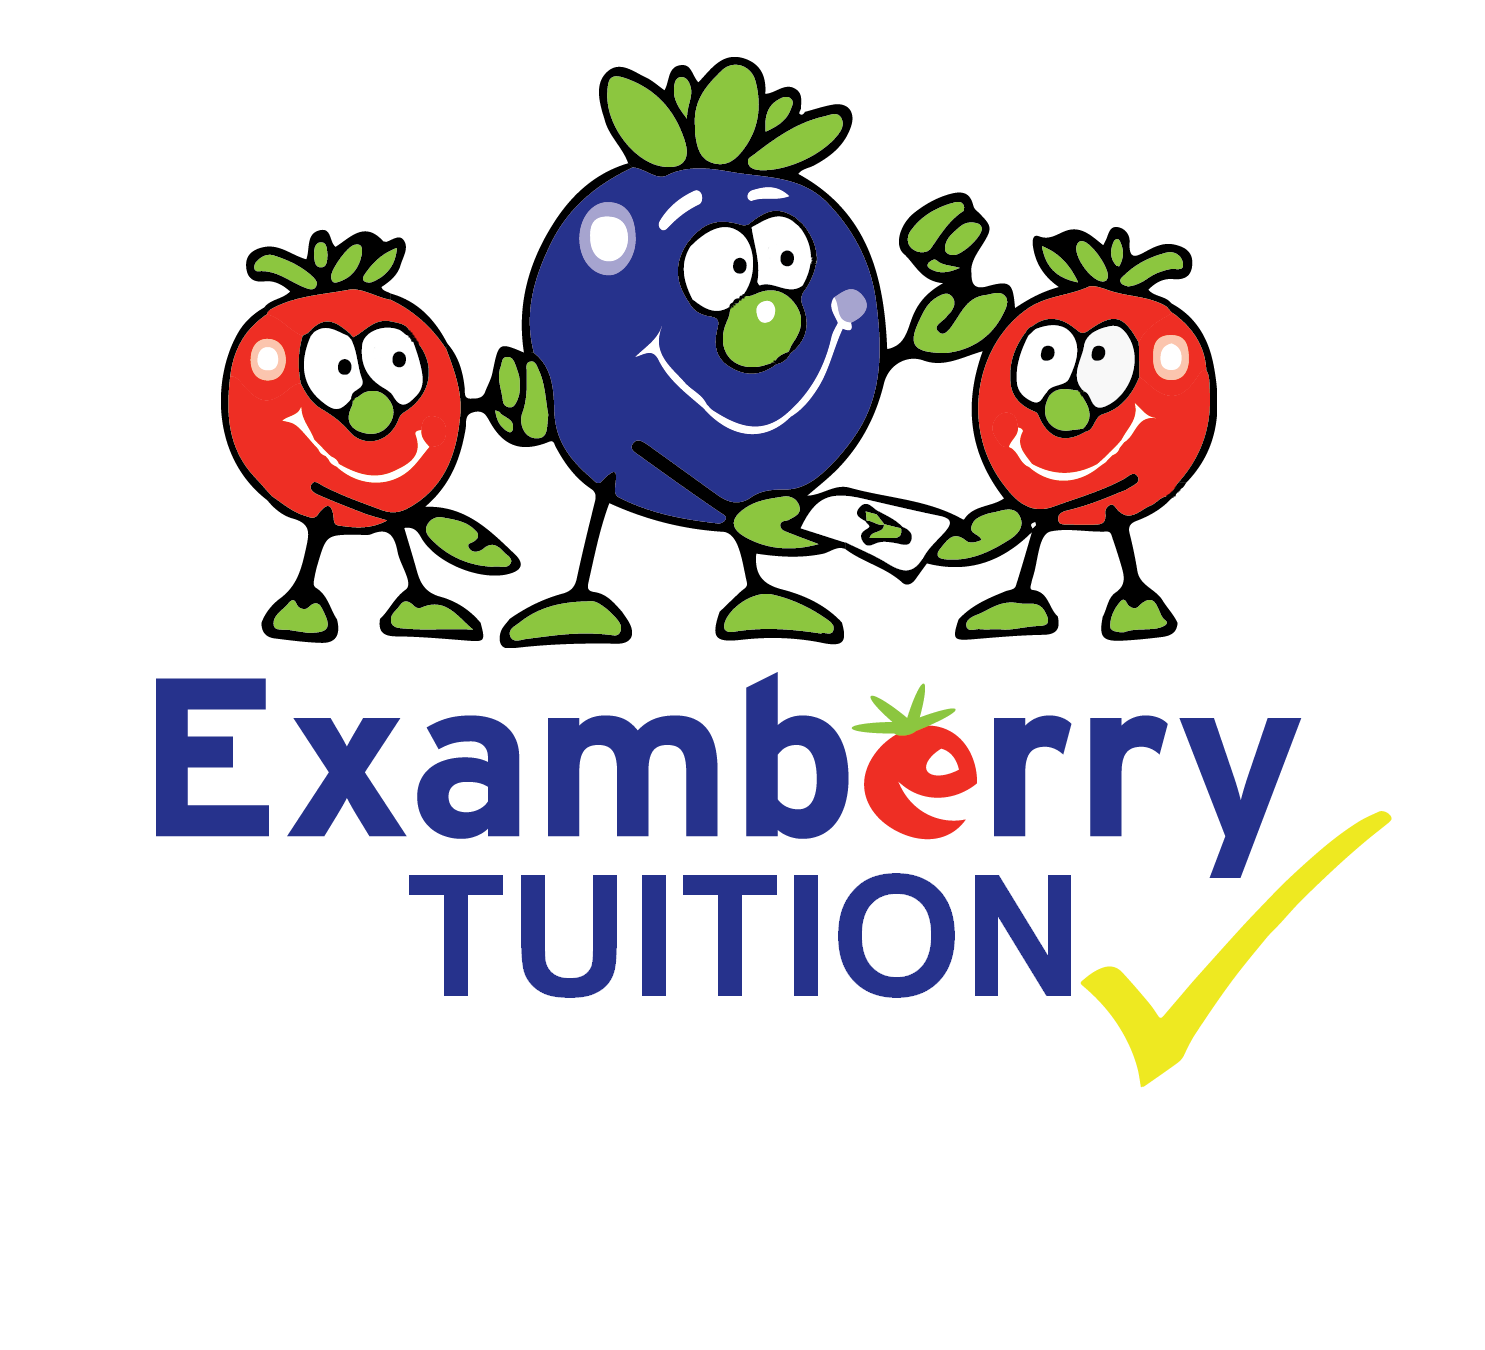 Examberry Tuition Ltd